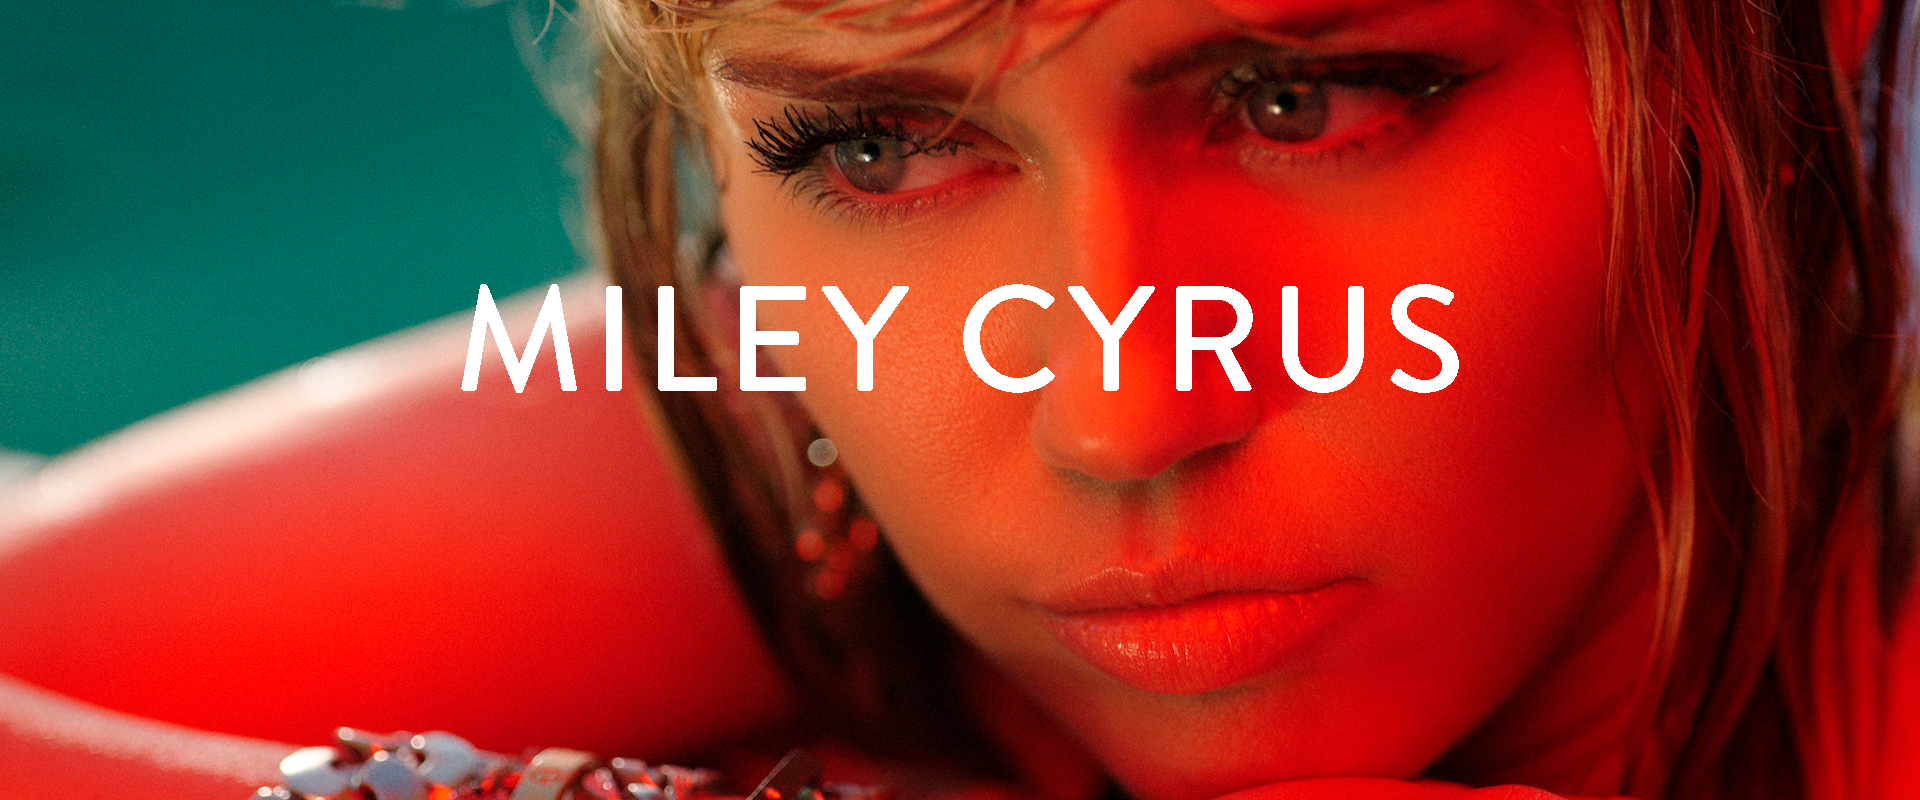 Miley_New_Carousel Template_RR.png